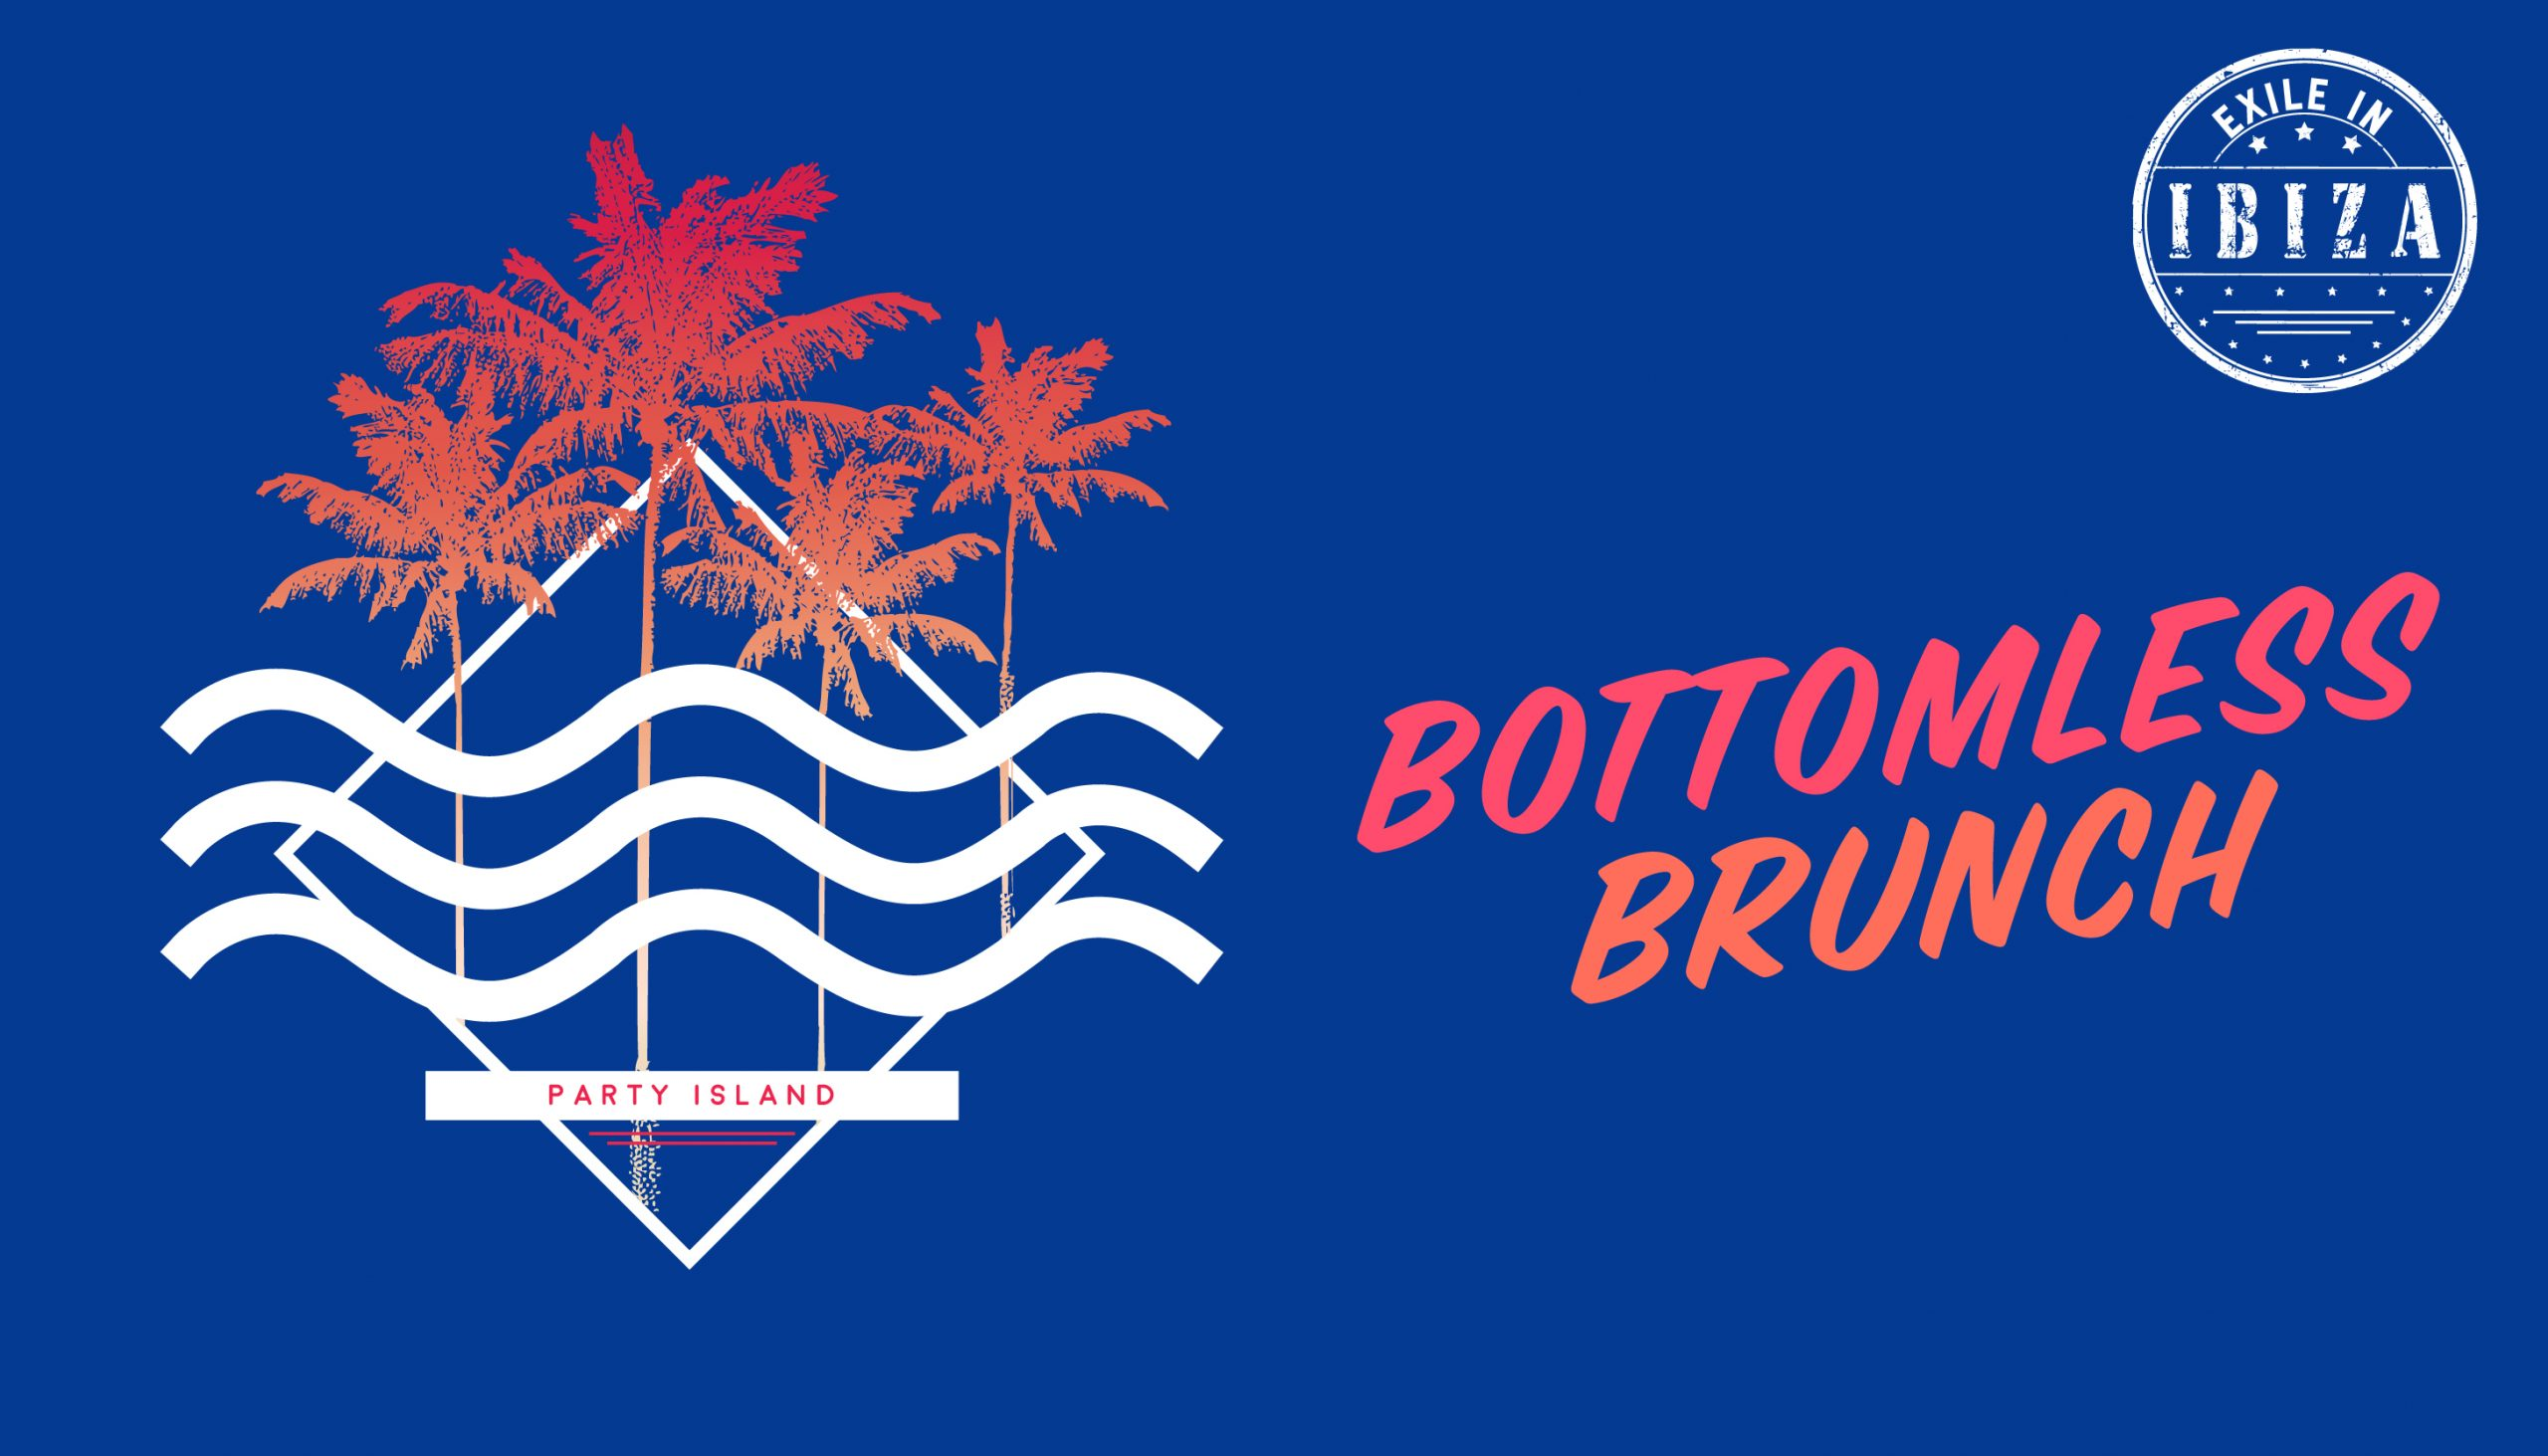 Exile in Ibiza Bottomless Brunch